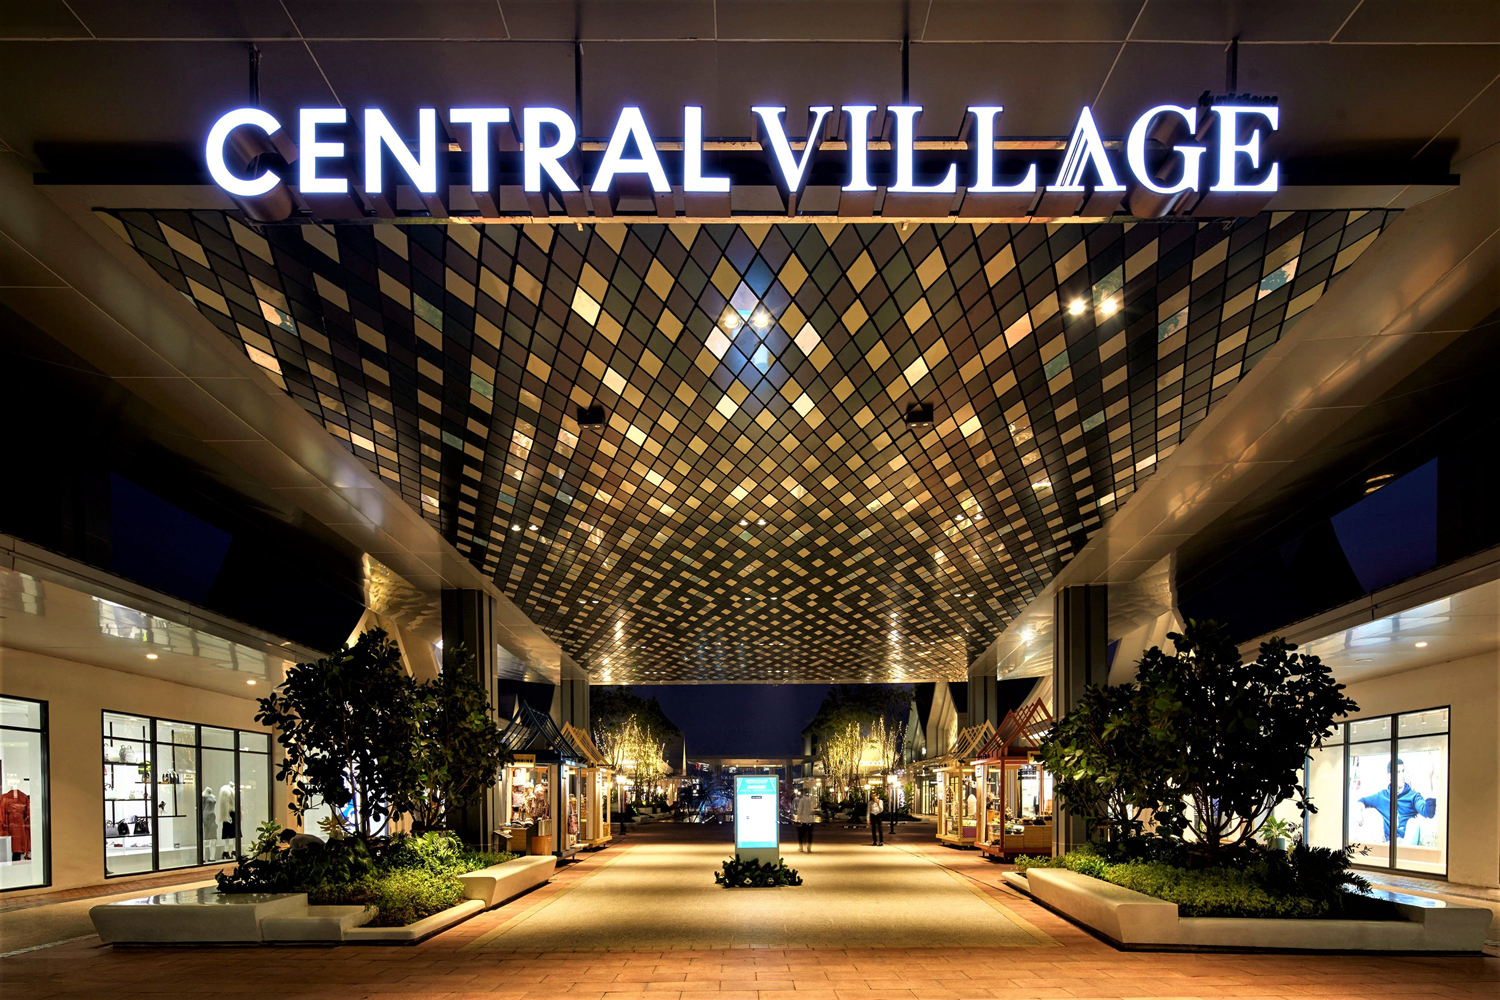 Central Village Joins Hands With 130 Brand Name Stores In Super Brand Grand Sale